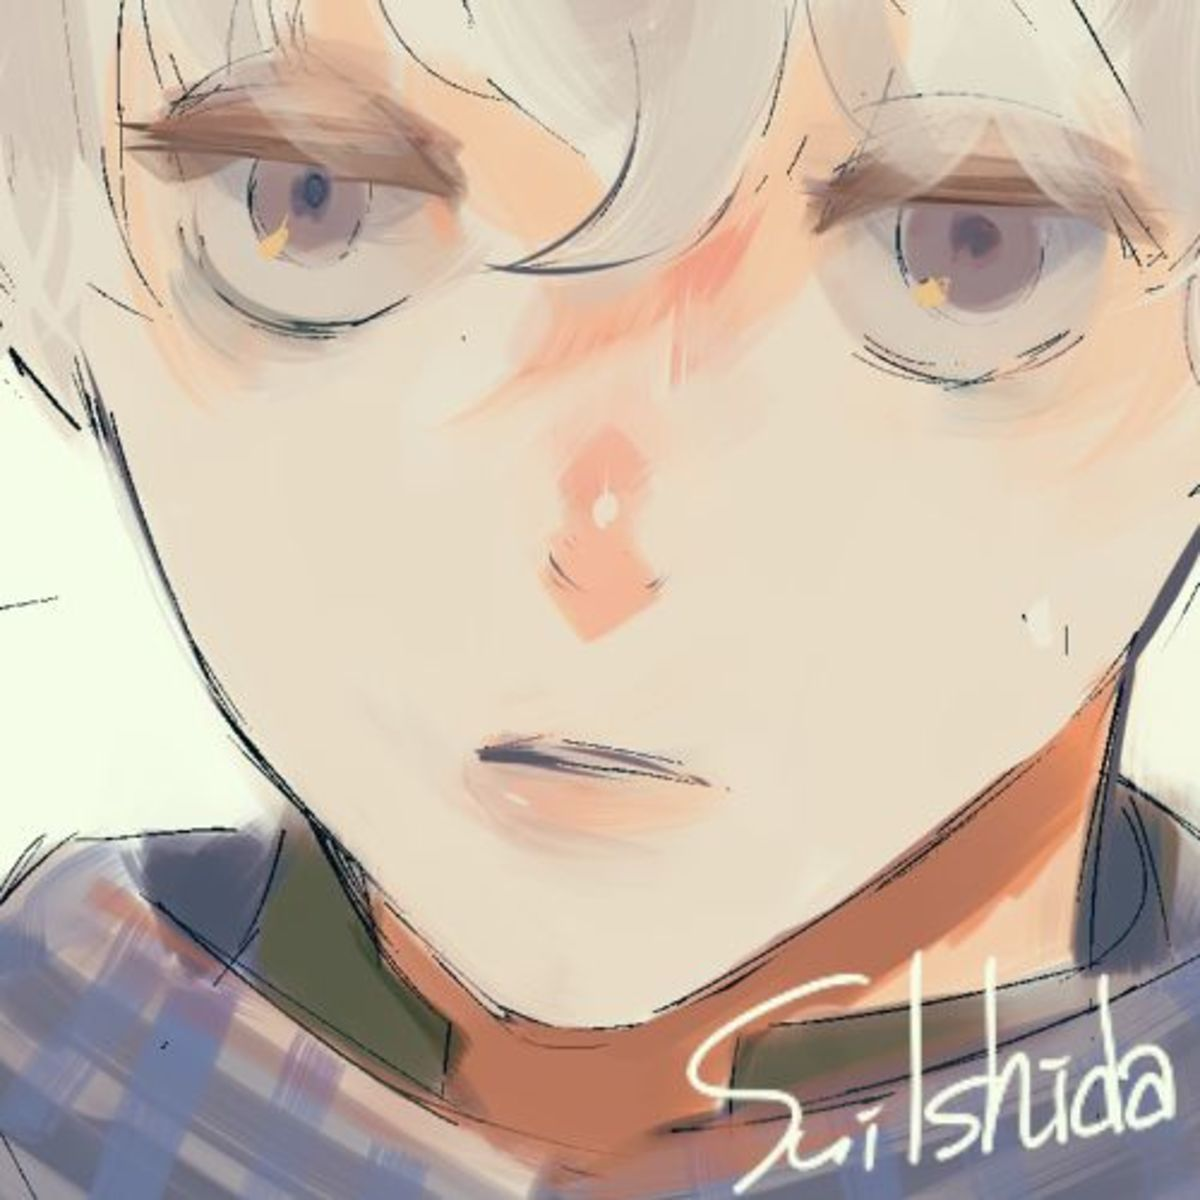 One of Ishida's profile pictures on Twitter.